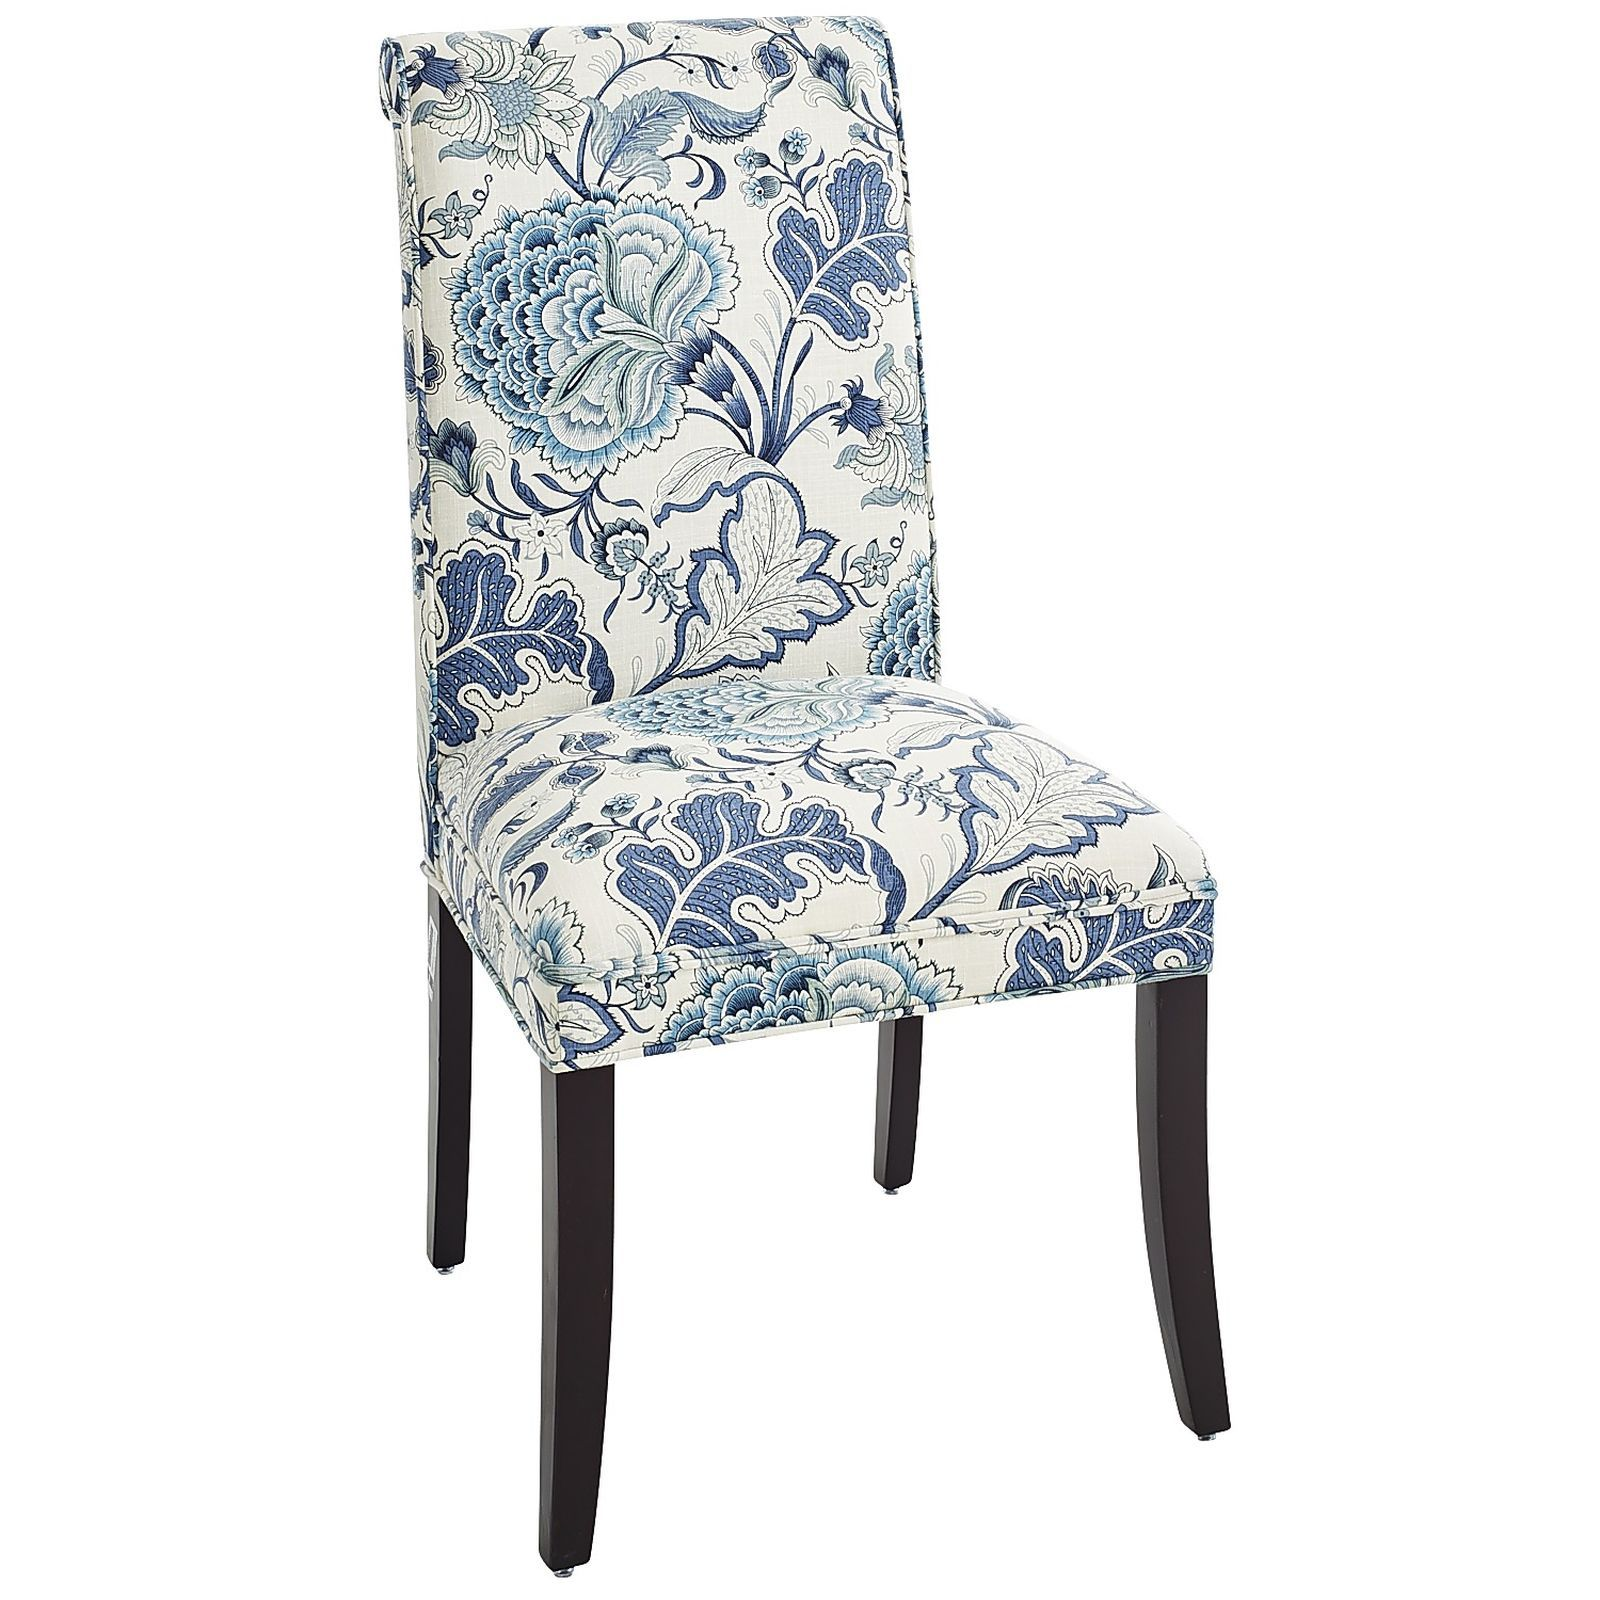 42+ Floral print dining chairs trends